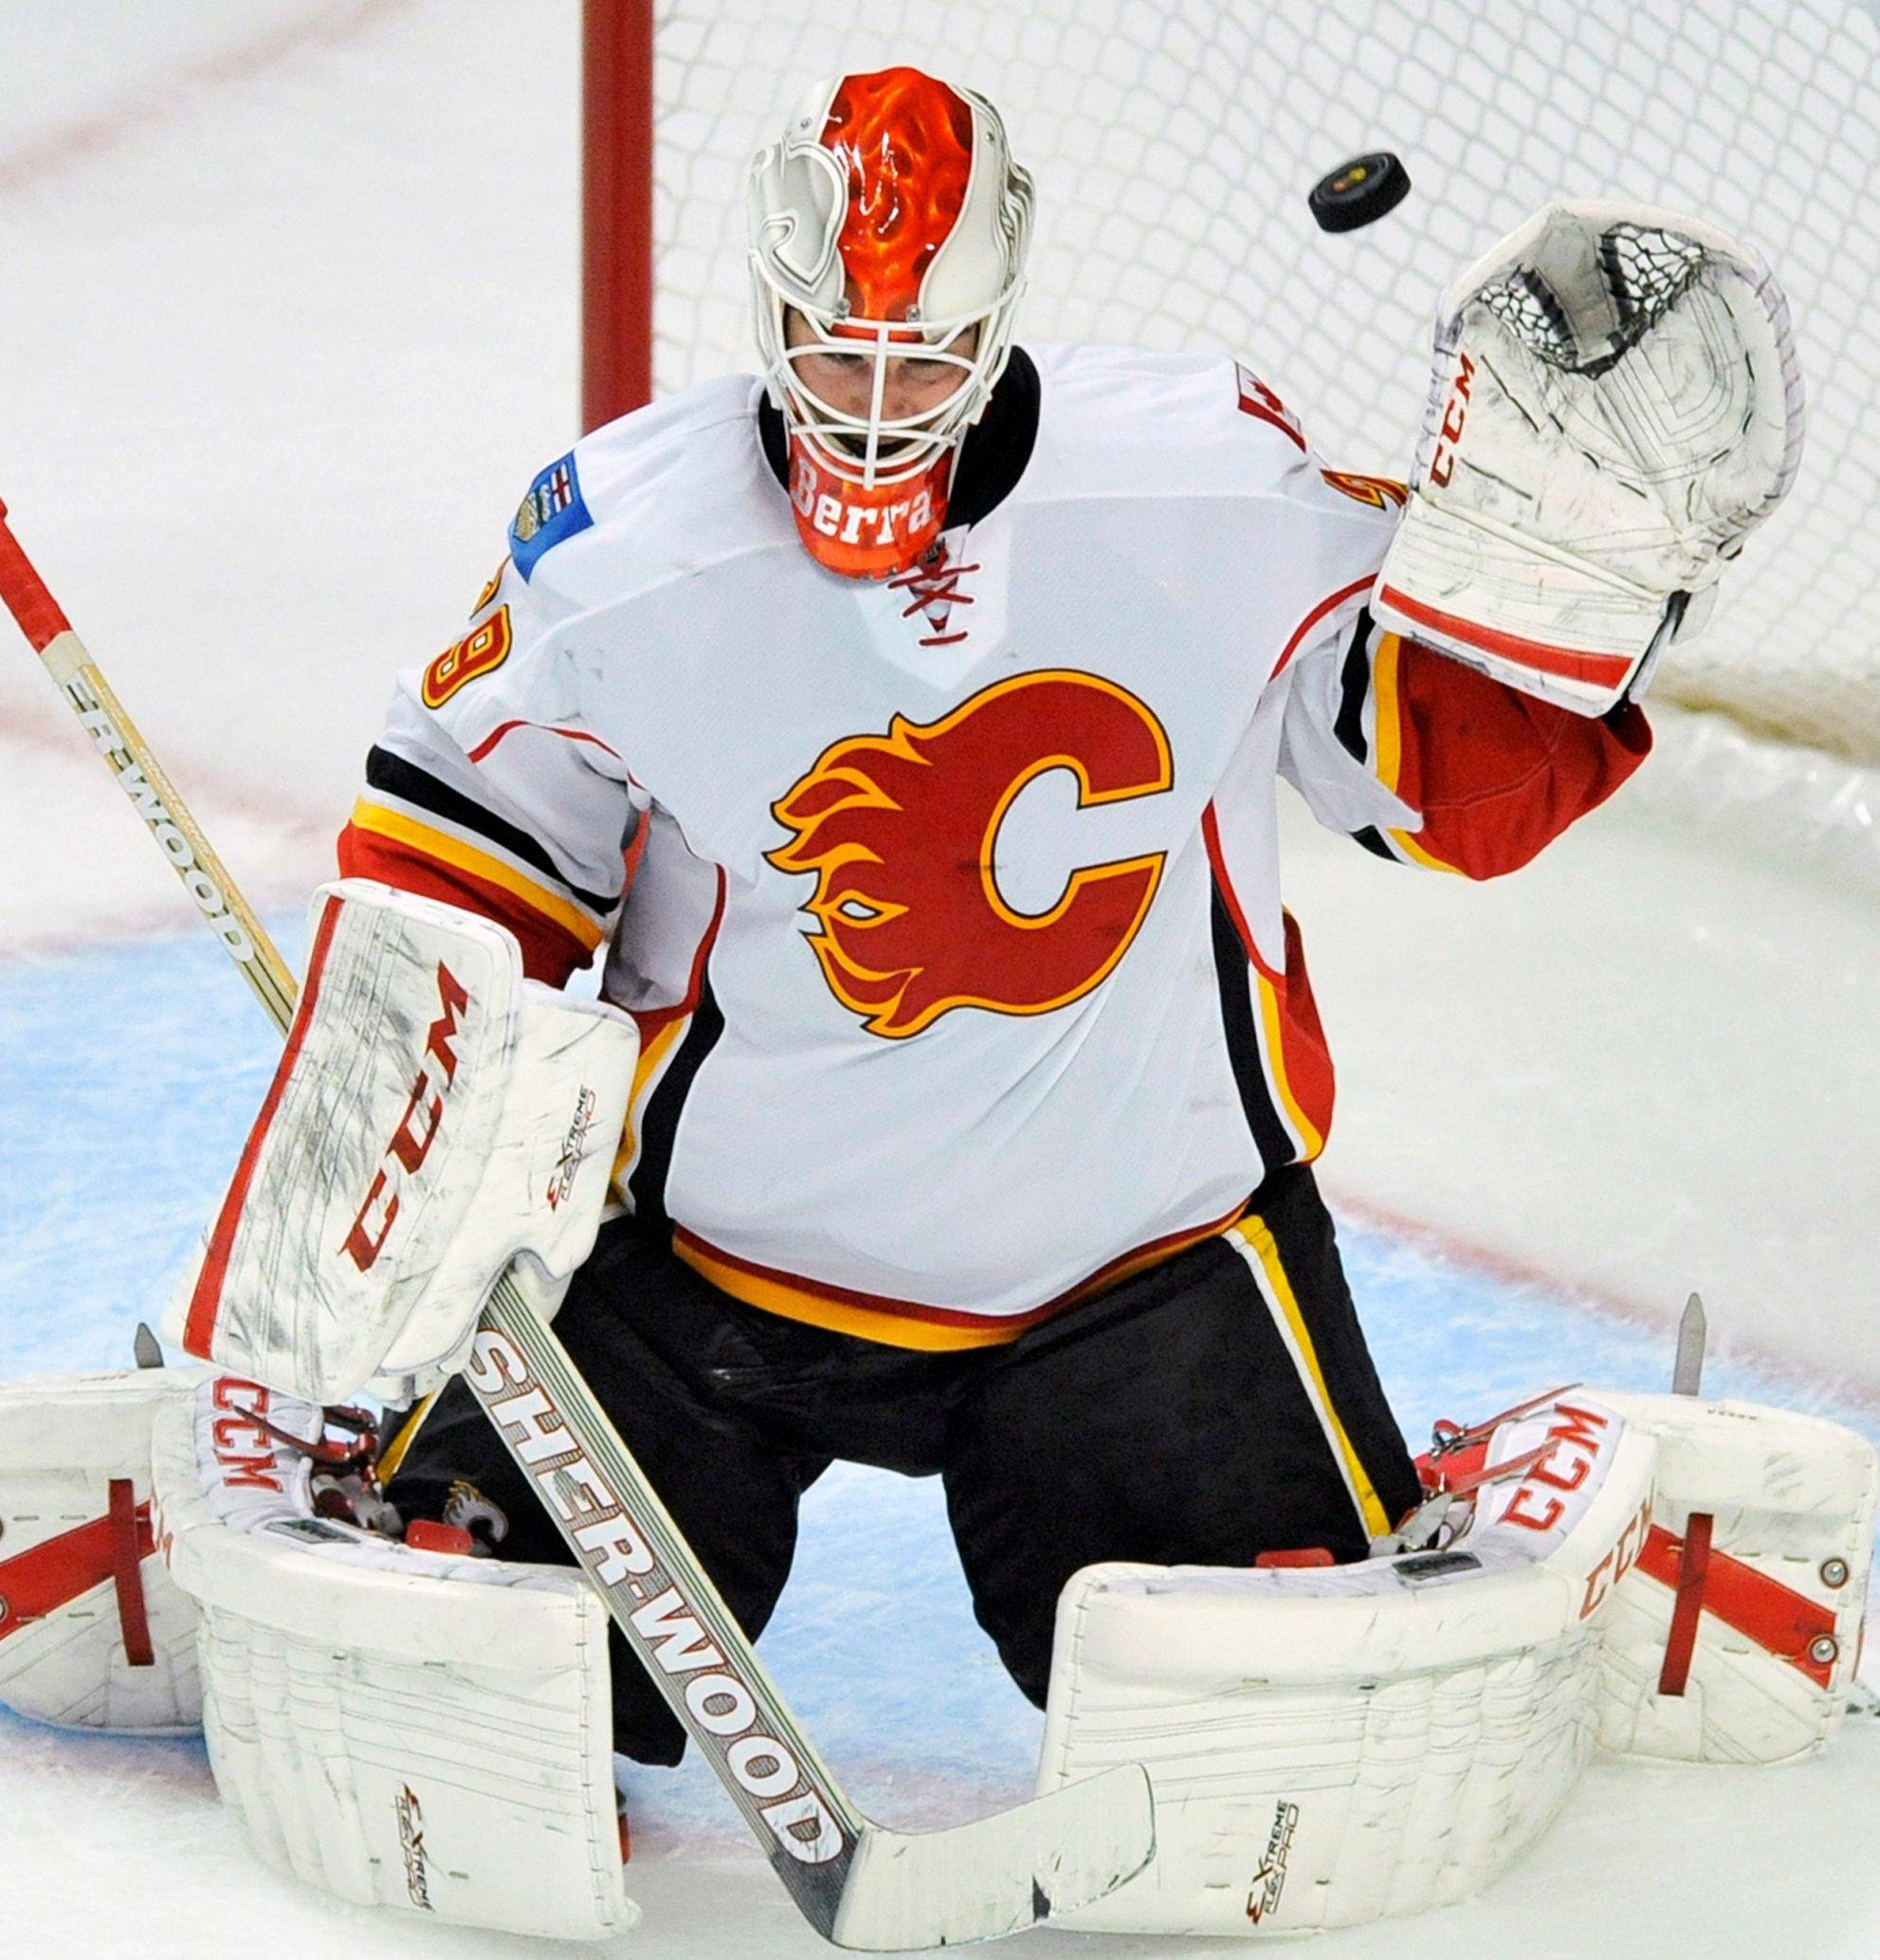 Calgary goalie Reto Berra makes 1 of his 42 saves Sunday at the United Center.